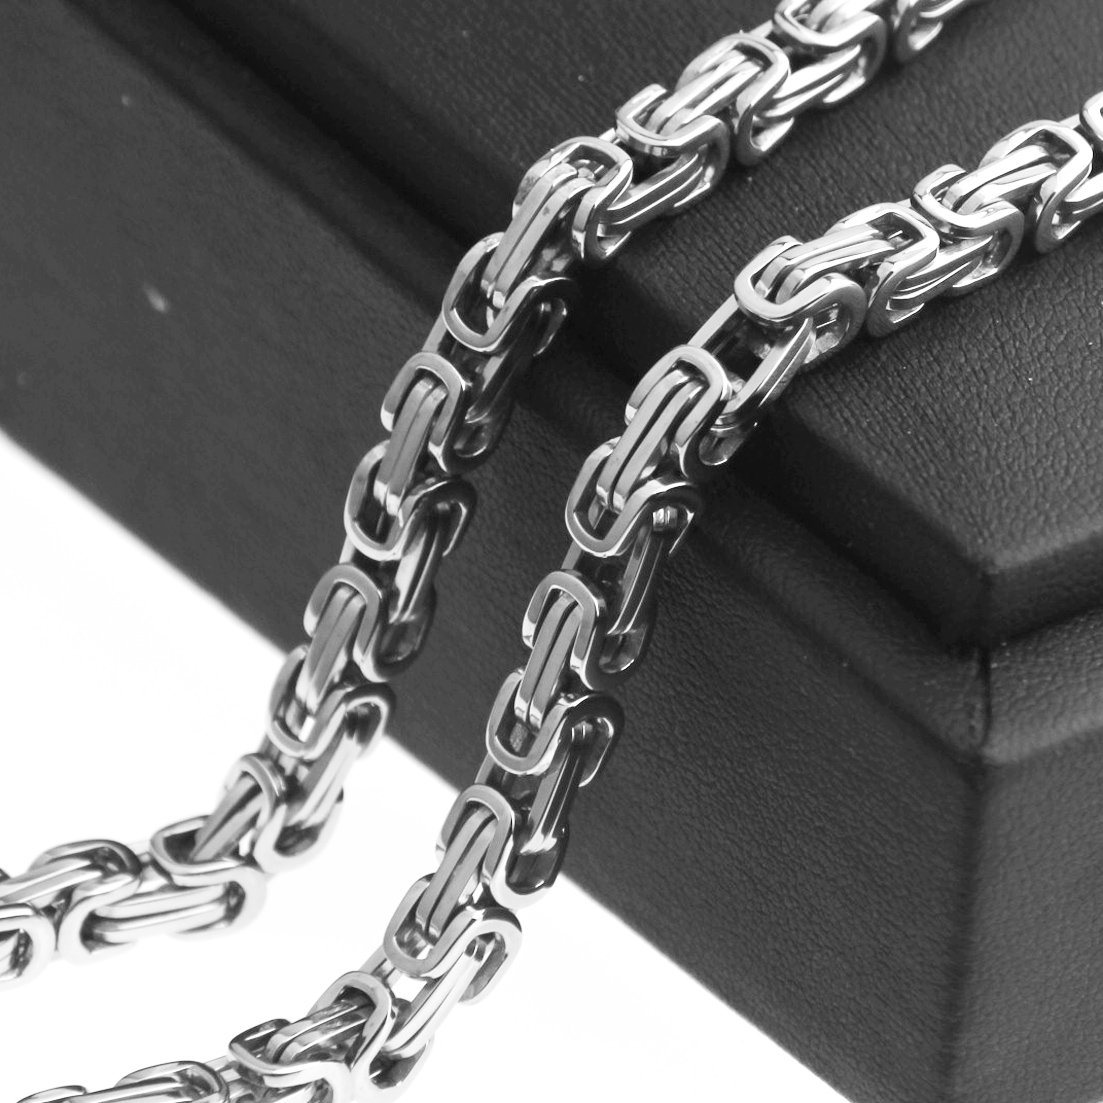 MUYING JEWELRY 4//6//8mm Customized Trendy 316L Stainless Steel Silver Byzantine Link Chain Mens Womens Necklace Or Bracelet Wristband 1PCS 8-40